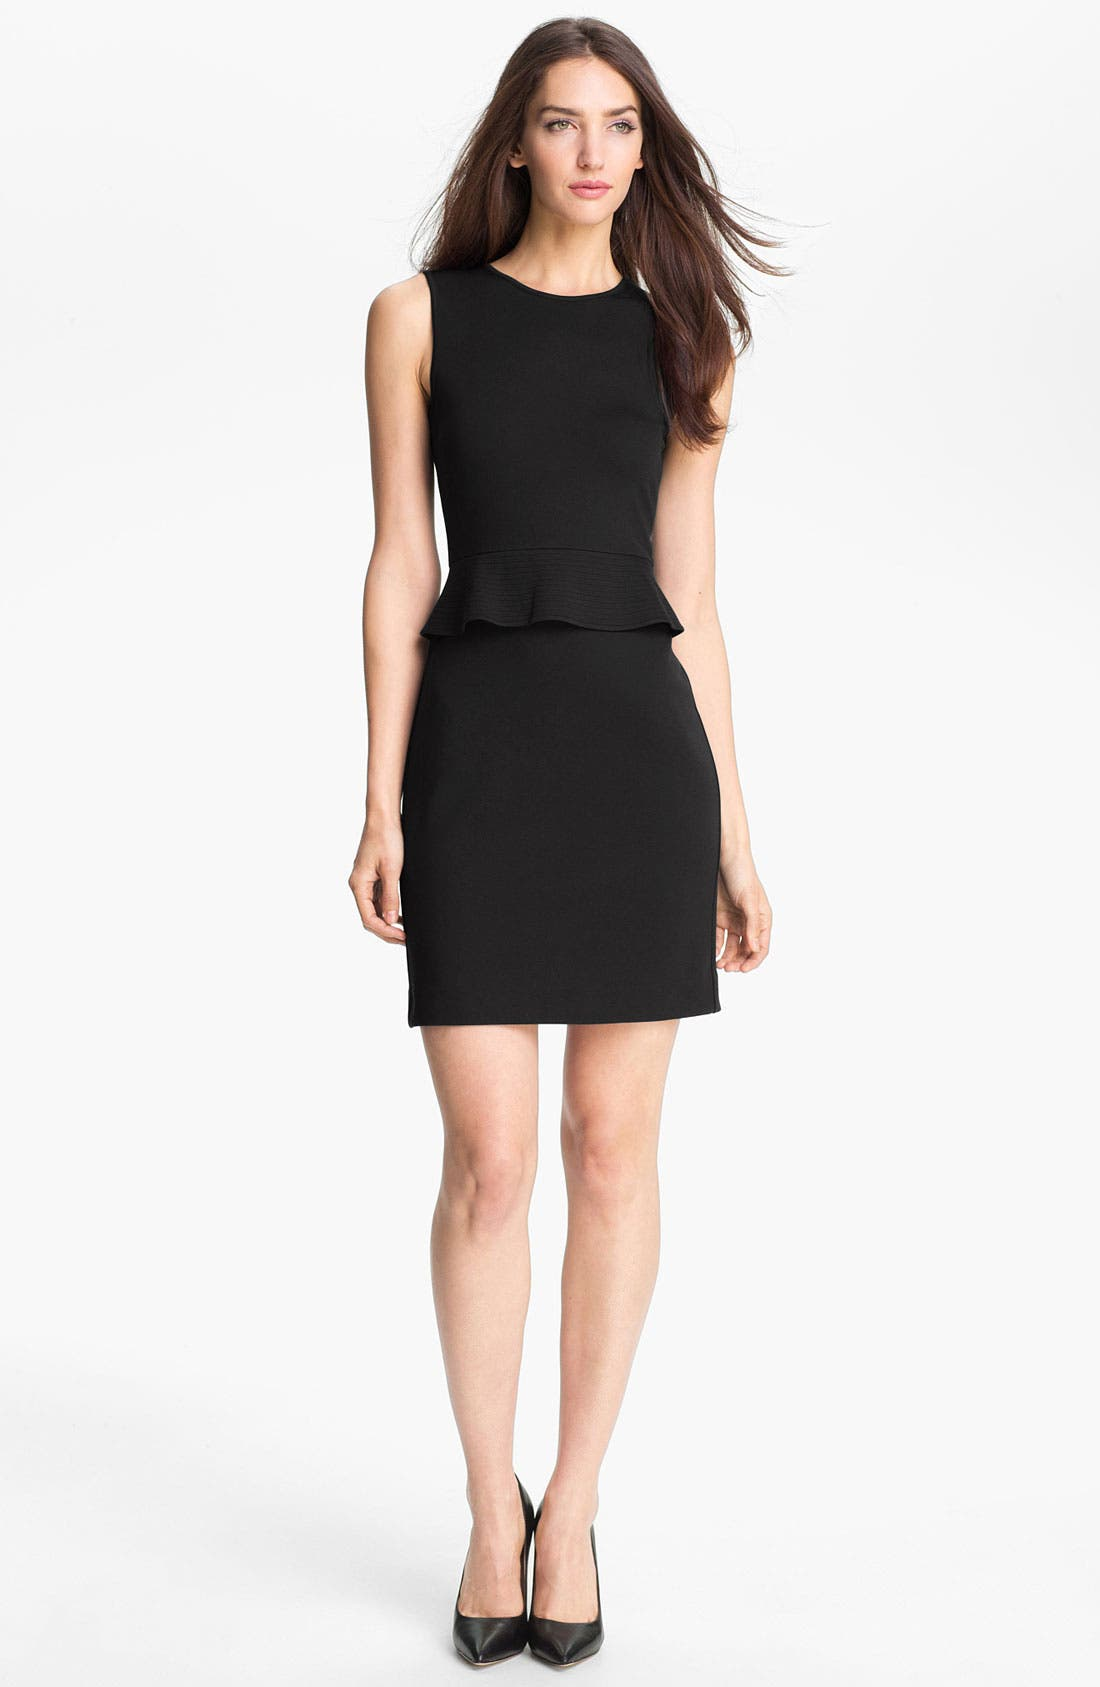 Alternate Image 1 Selected - Theory 'Dellera' Stretch Knit Sheath Dress